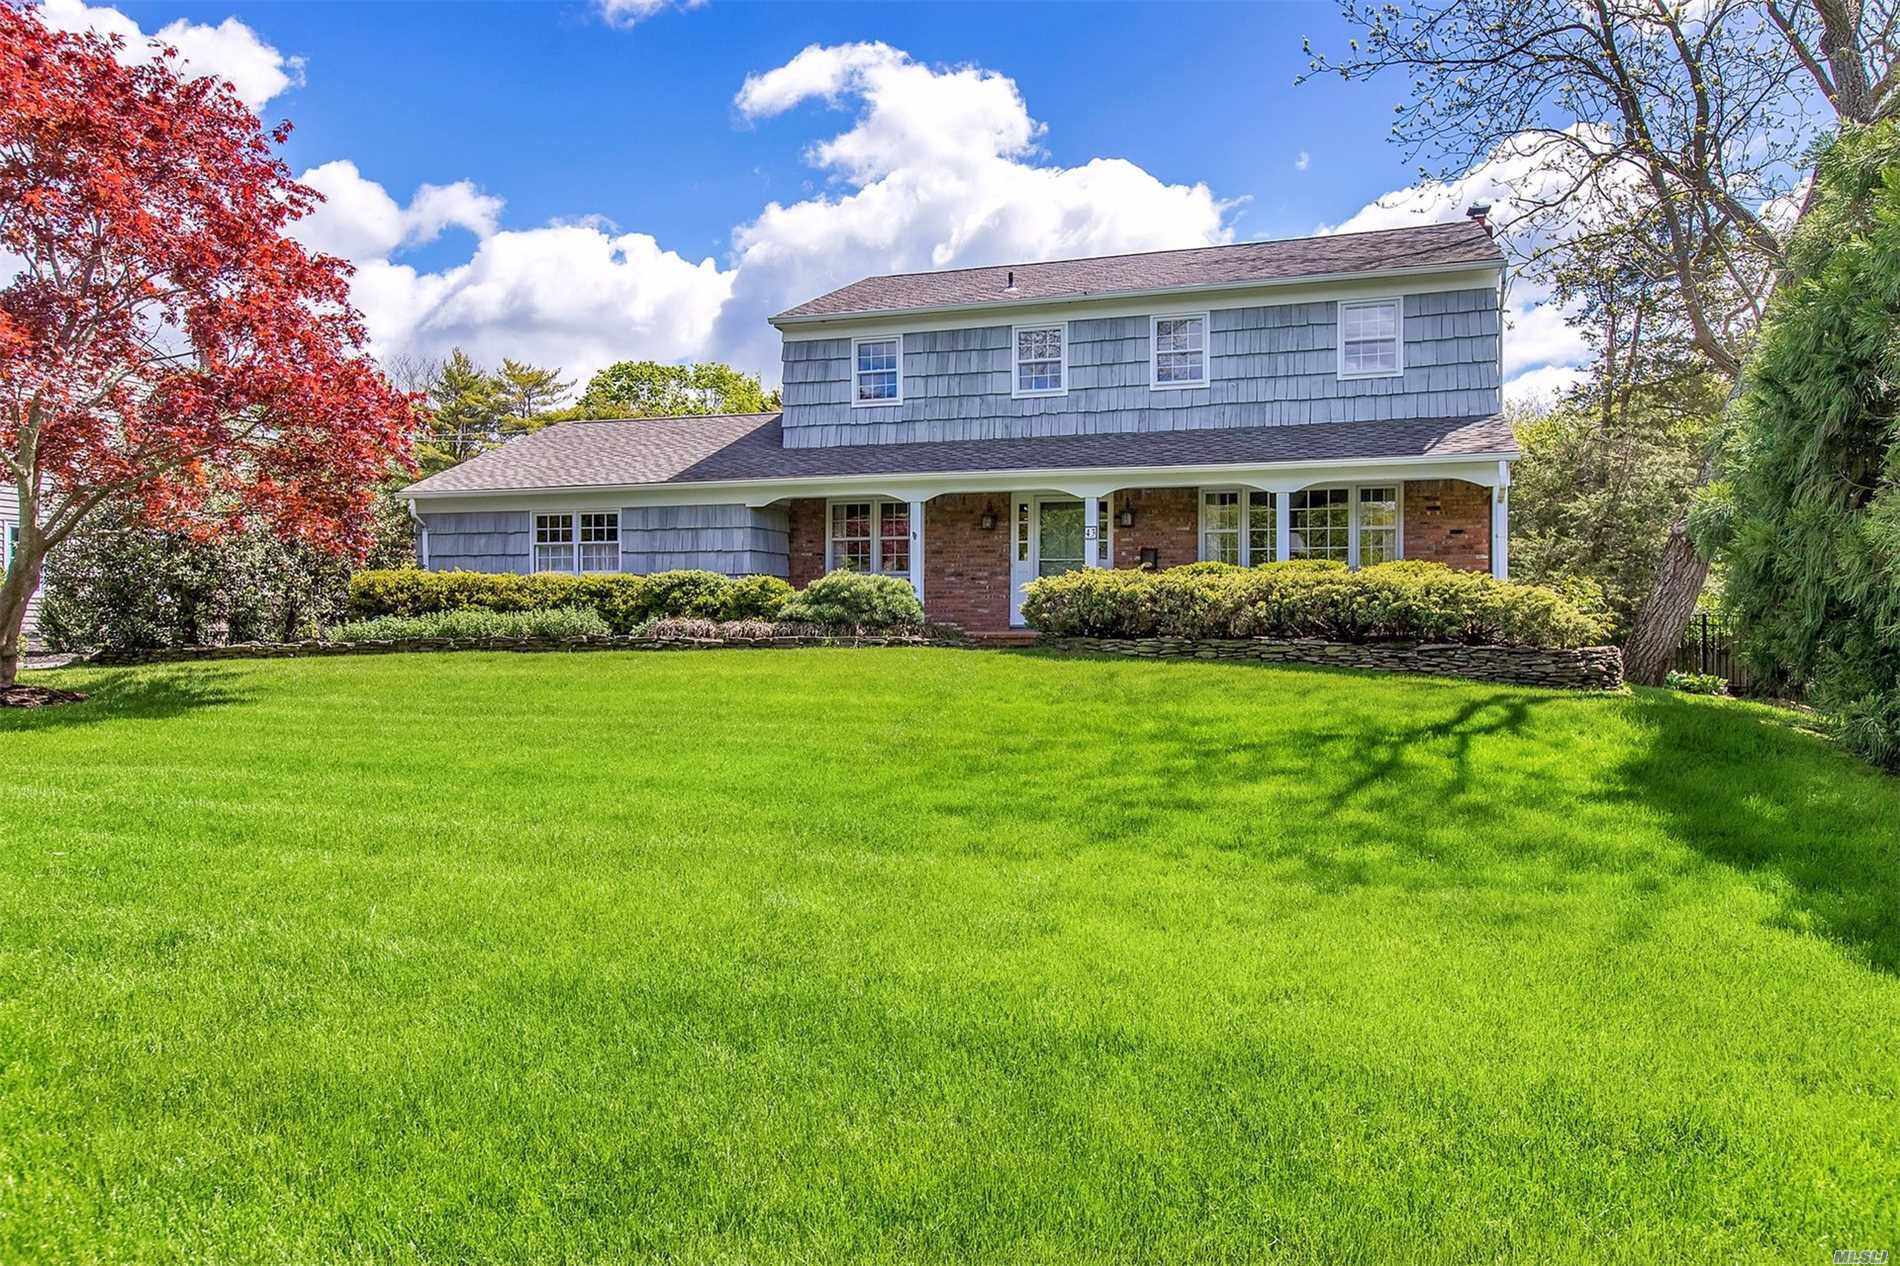 Wonderful classic colonial on maturely landscaped half acre. Long driveway, rocking chair brick front porch, rear screen-enclosed porch and new in ground pool.Inside you'll find beautifully finished hardwood floors and crown moulding throughout, wainscoted ceilings and walls, open concept kitchen and great room with brick hearth and wood burning fireplace. Generously sized bedrooms, master with it's own bath, plenty of closets and full unfinished yet immaculate basement. Just a delightful home!